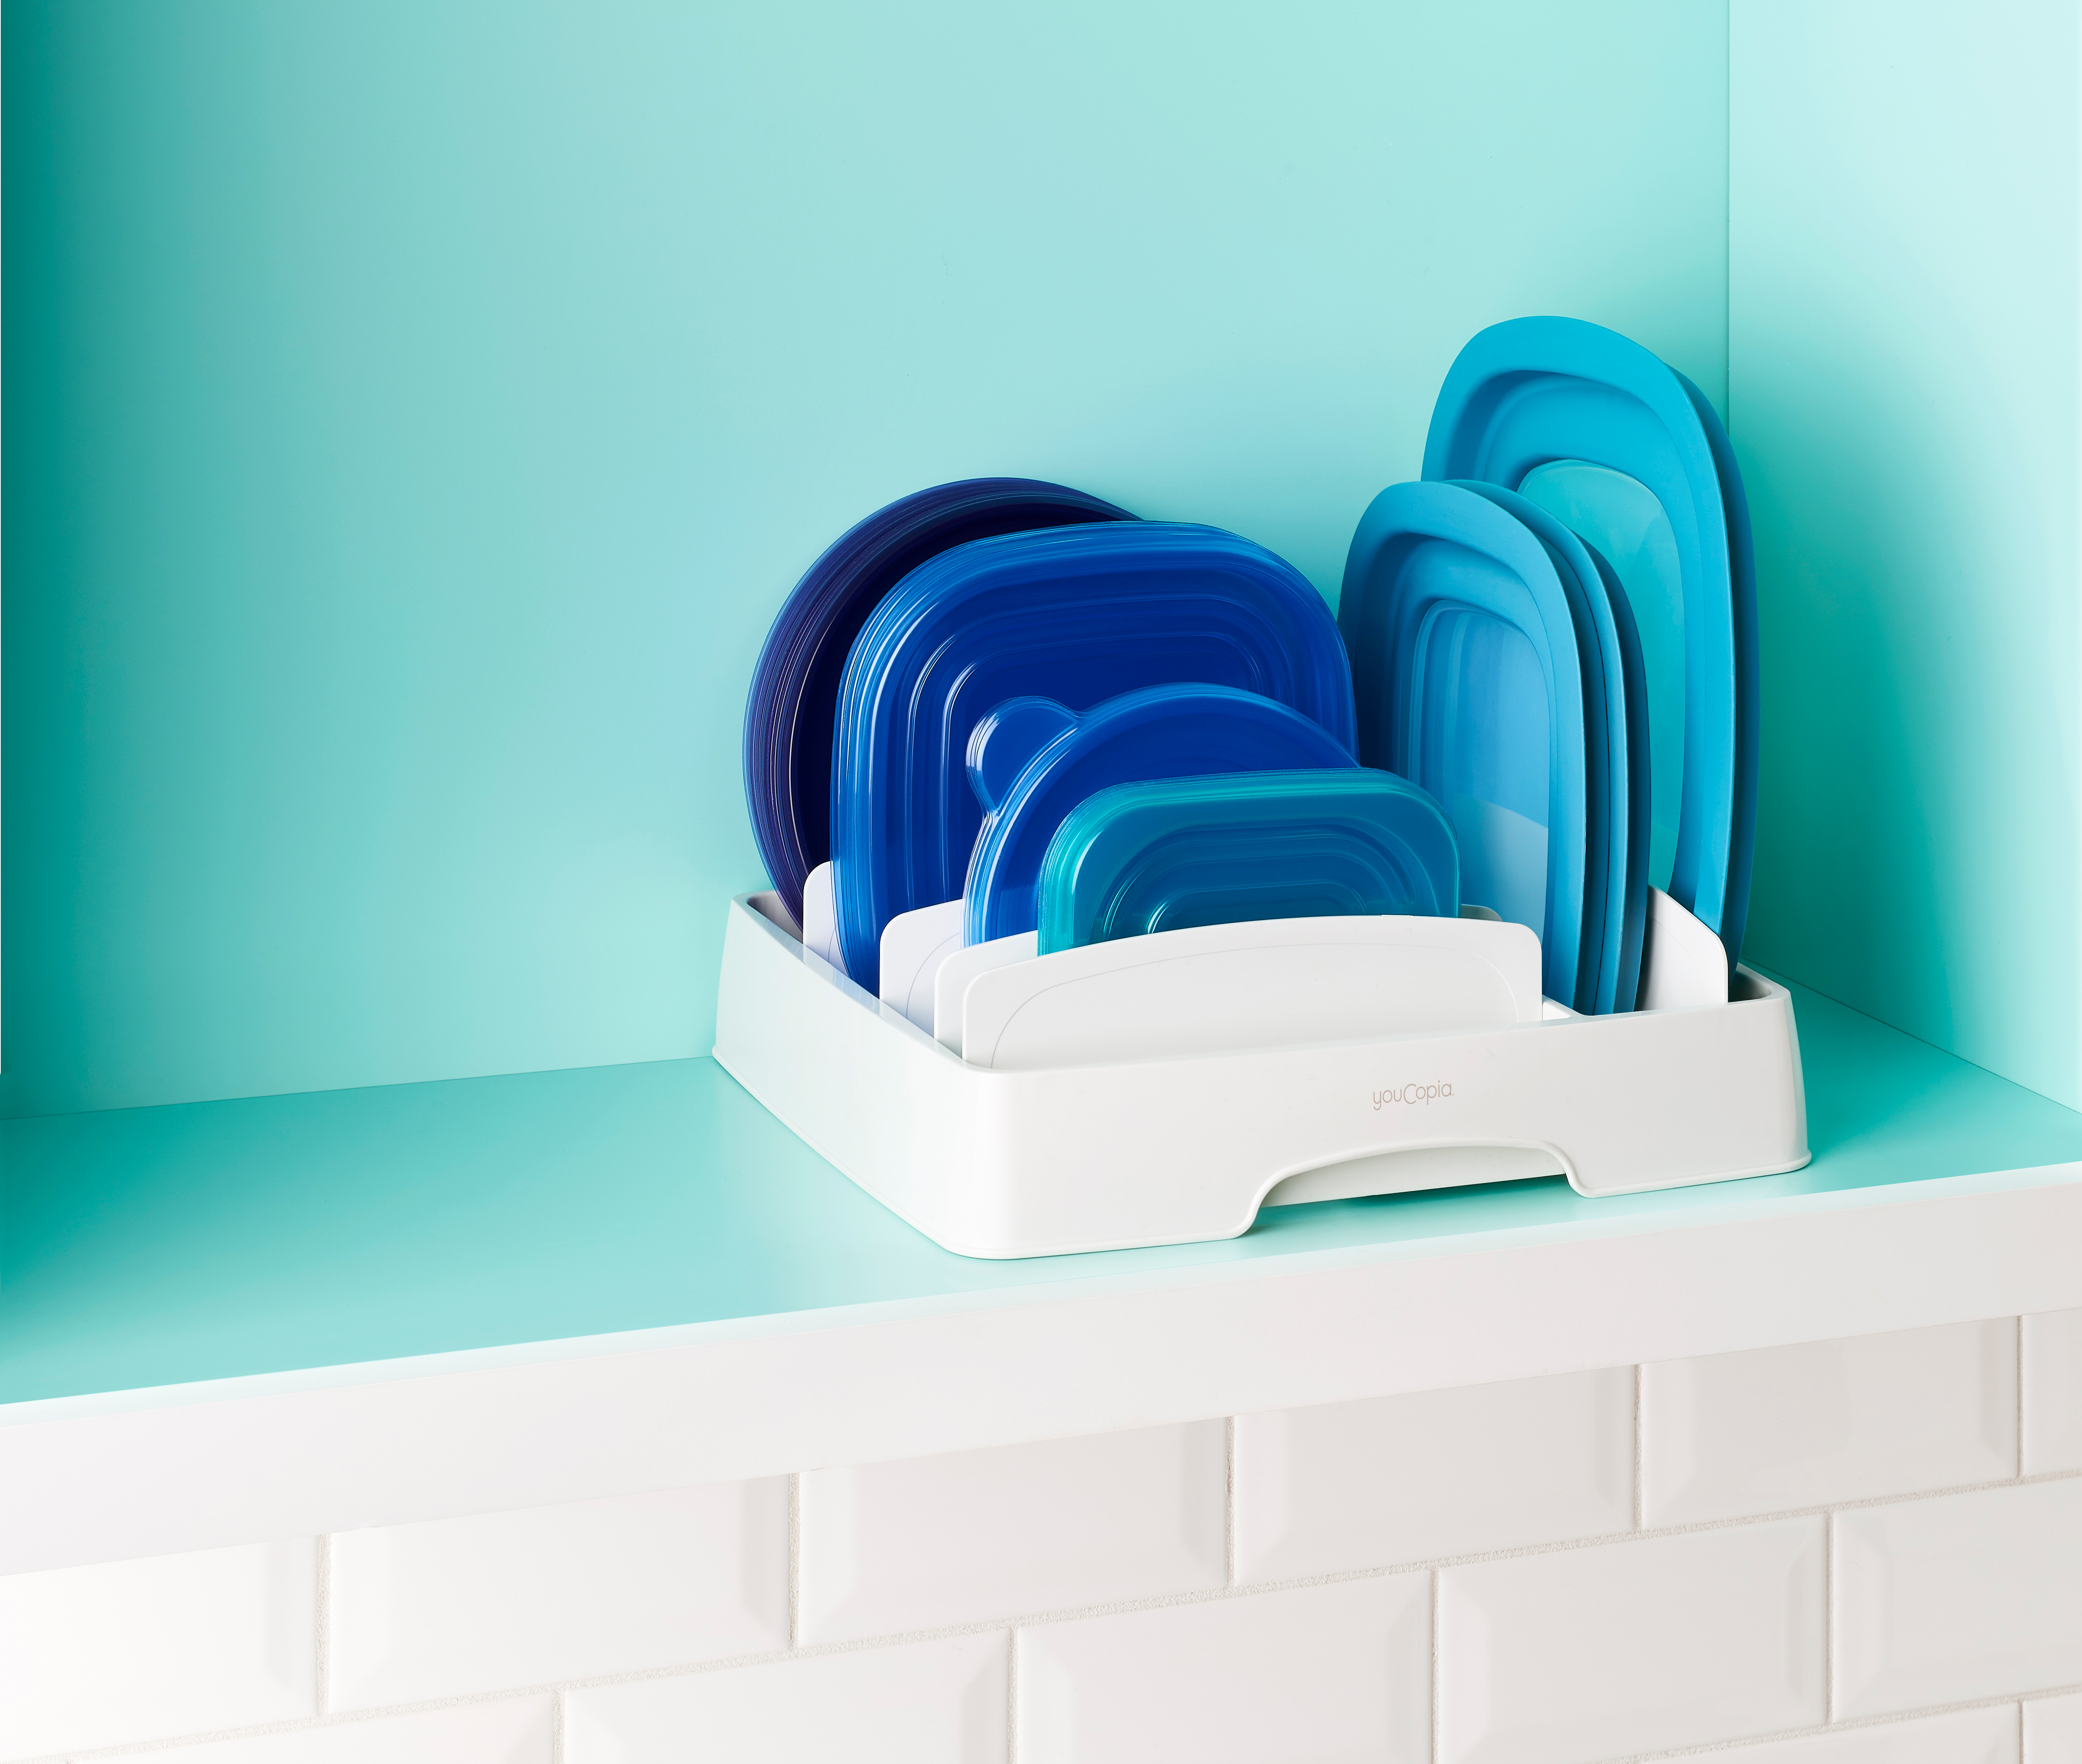 Plastic food container lids are organized neatly with YouCopia's Storalid lid organizer